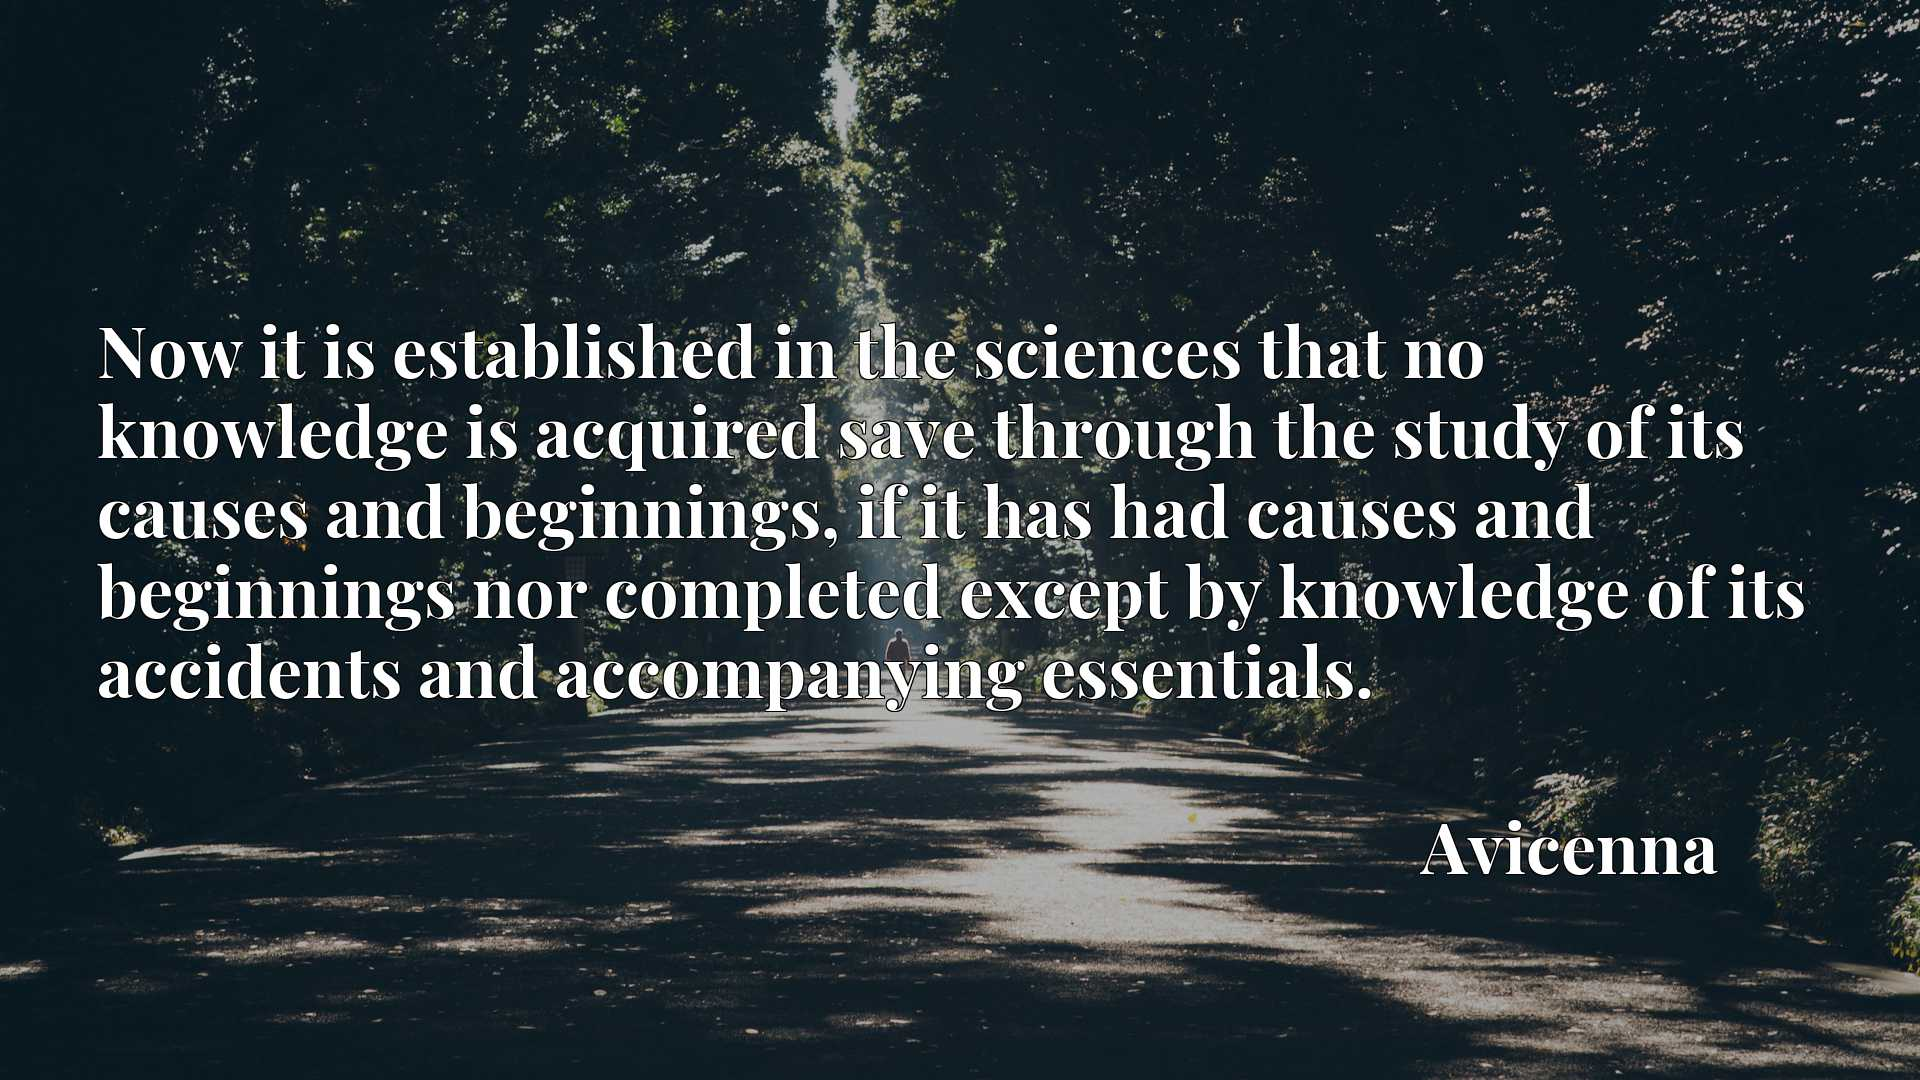 Now it is established in the sciences that no knowledge is acquired save through the study of its causes and beginnings, if it has had causes and beginnings nor completed except by knowledge of its accidents and accompanying essentials.